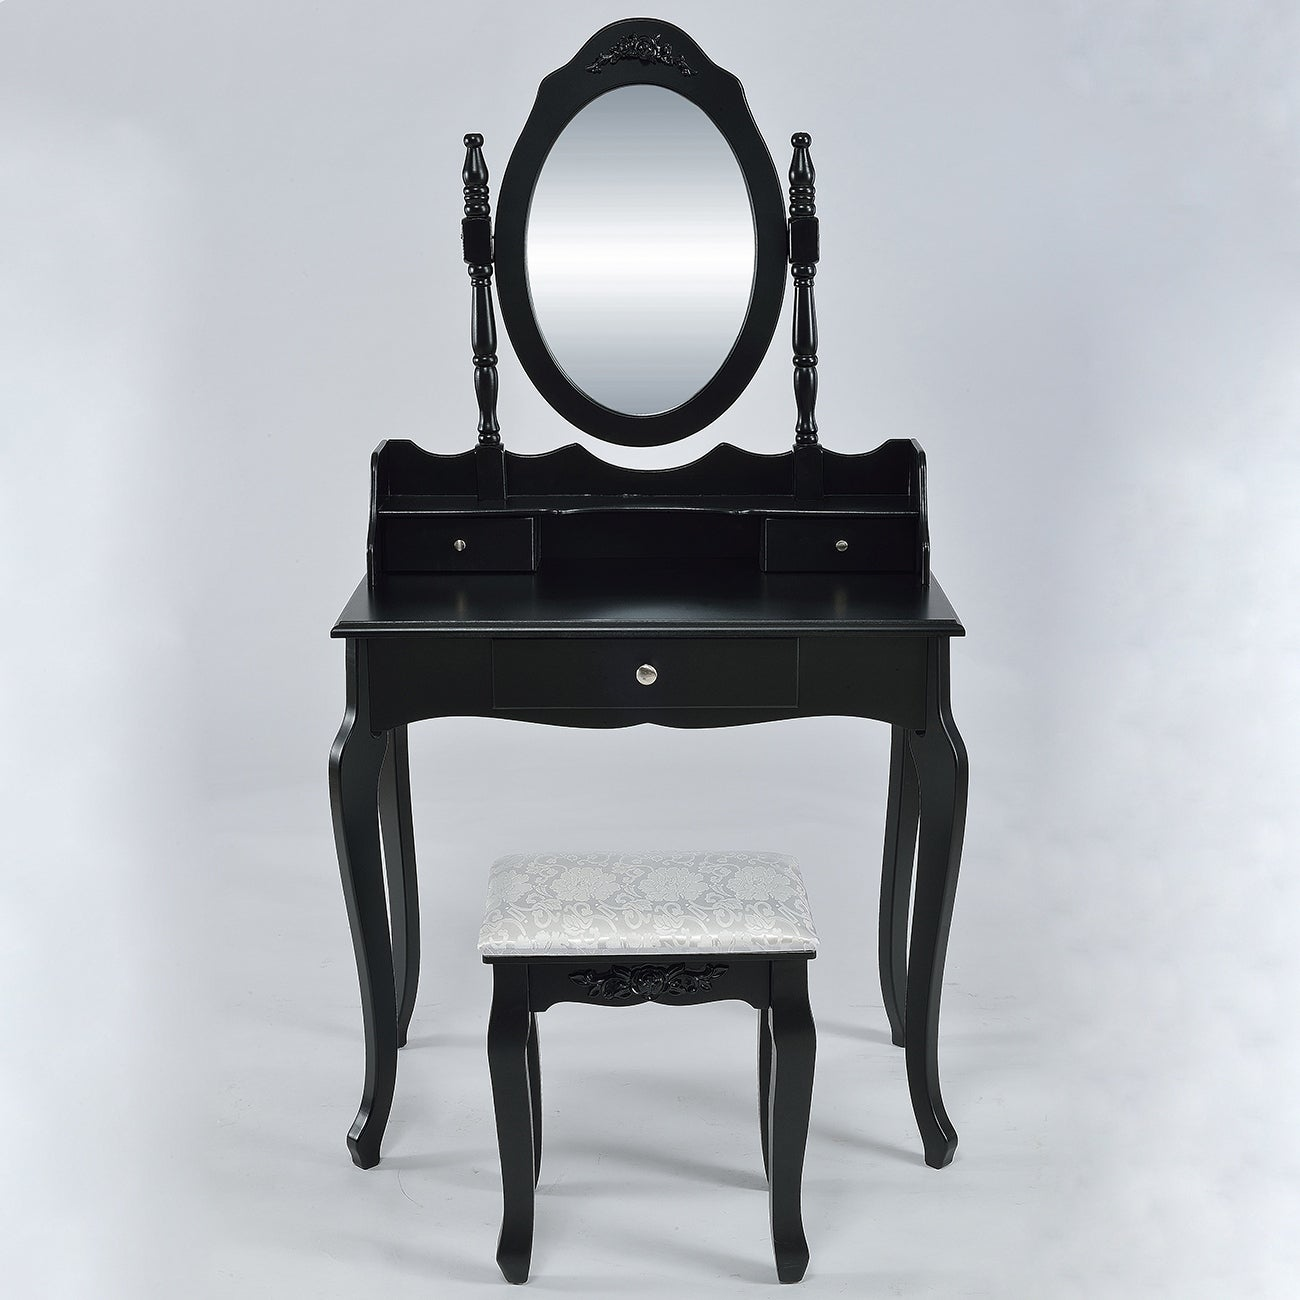 Belleze Vanity Set Vintage Style Vanity Dressing Table Makeup Desk With Mirror And Stool Bedroom Black Overstock 15889757